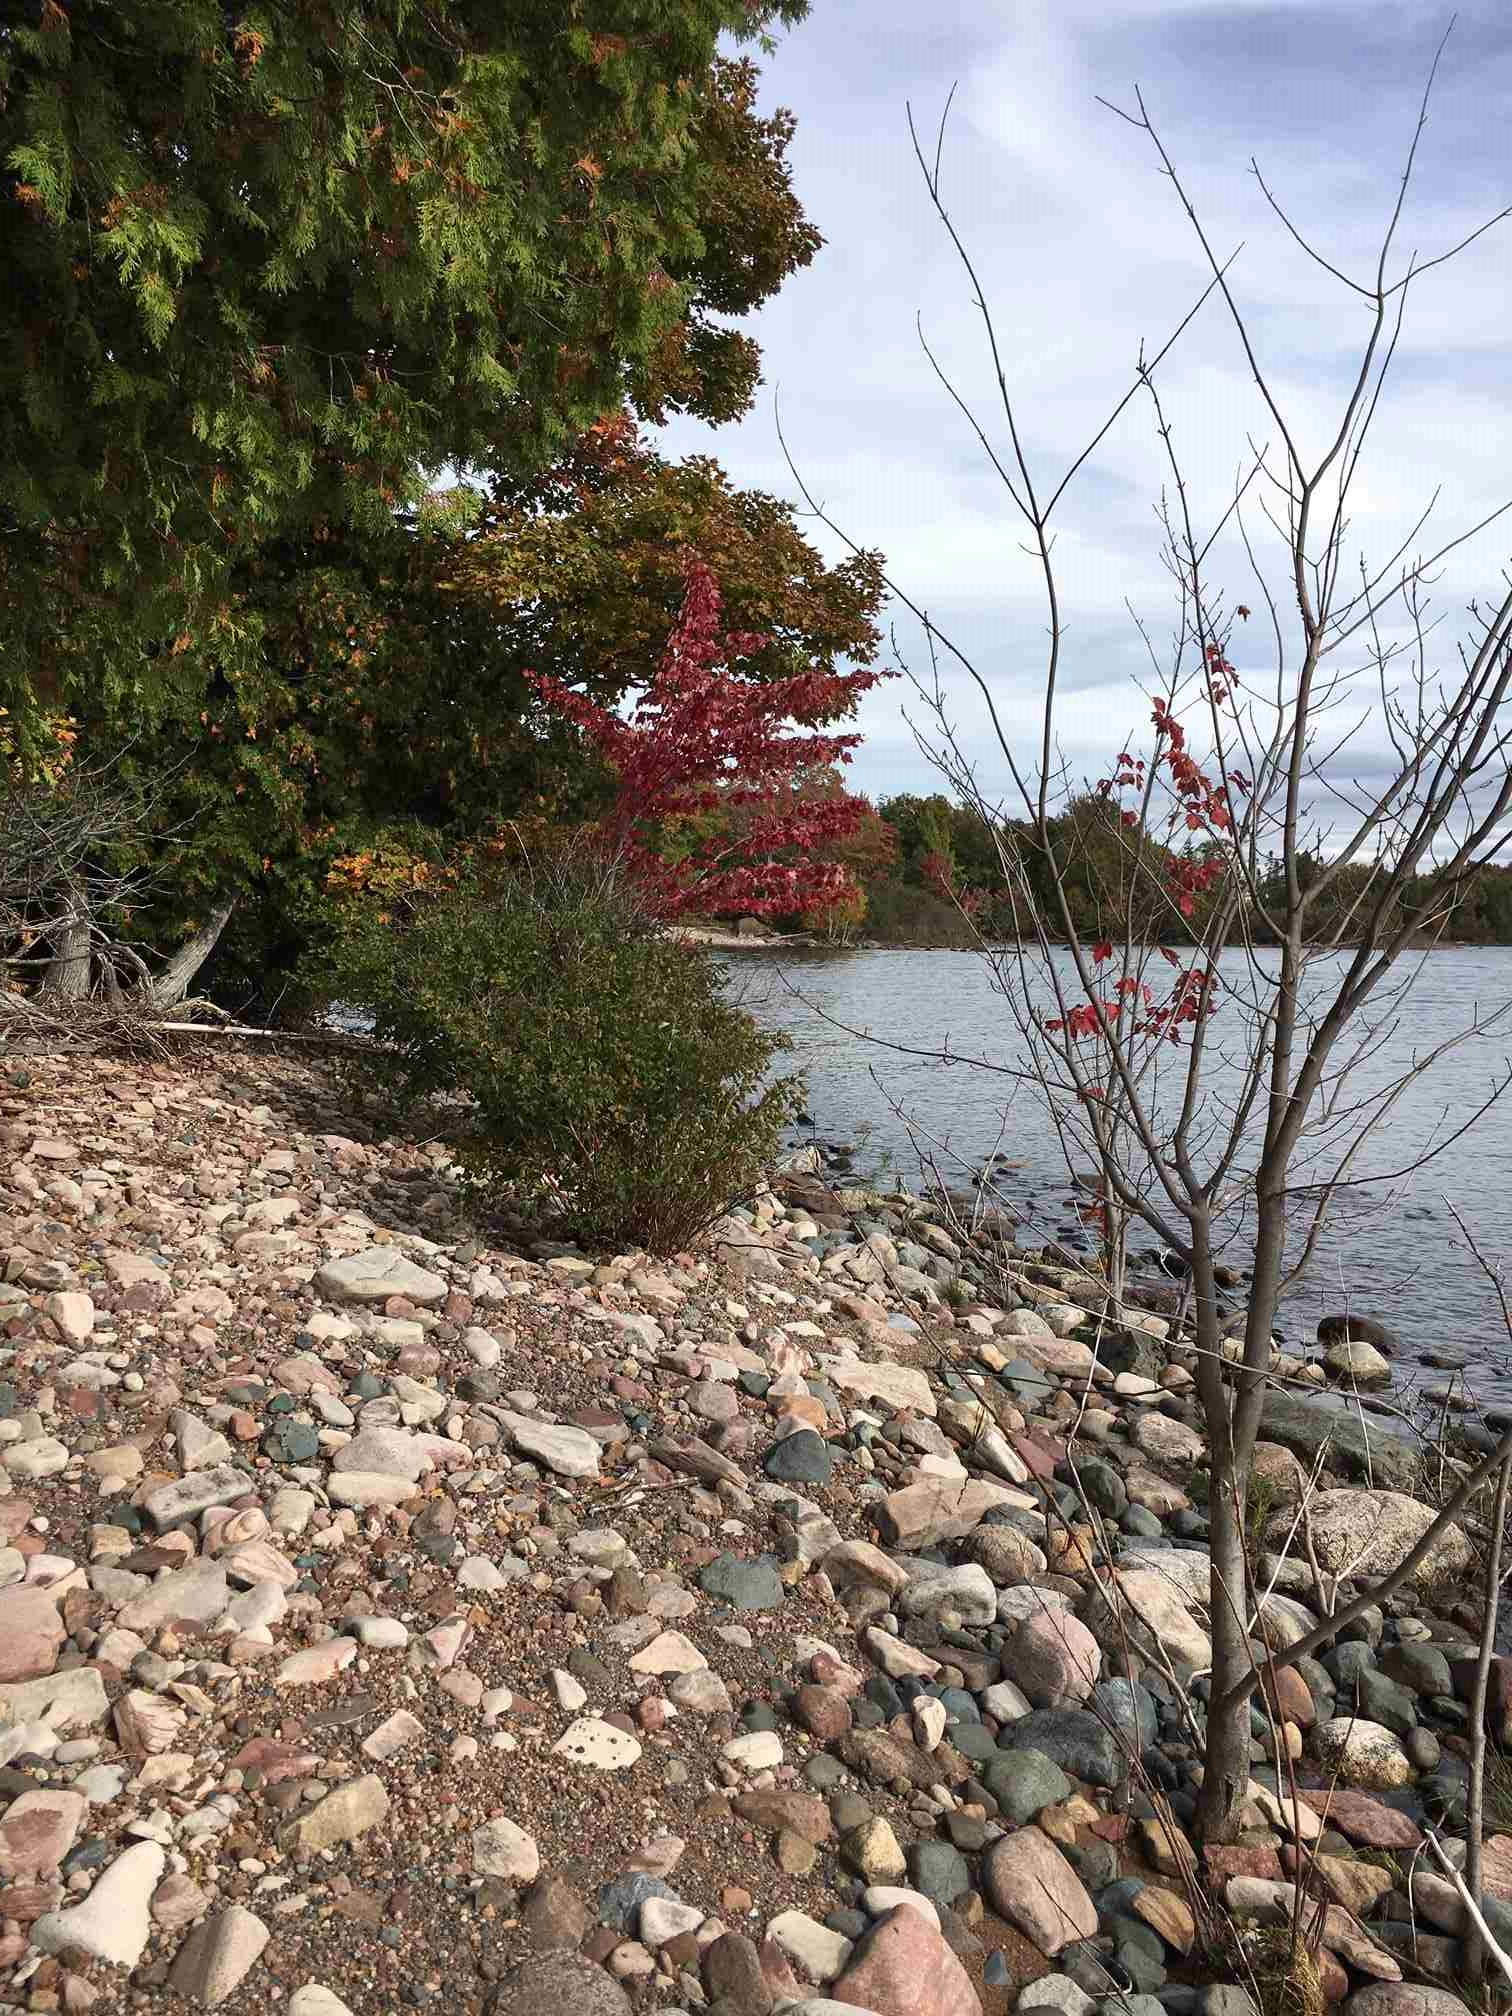 Lot 79 & 80 Marlette Drive, Havilland Ontario, Canada